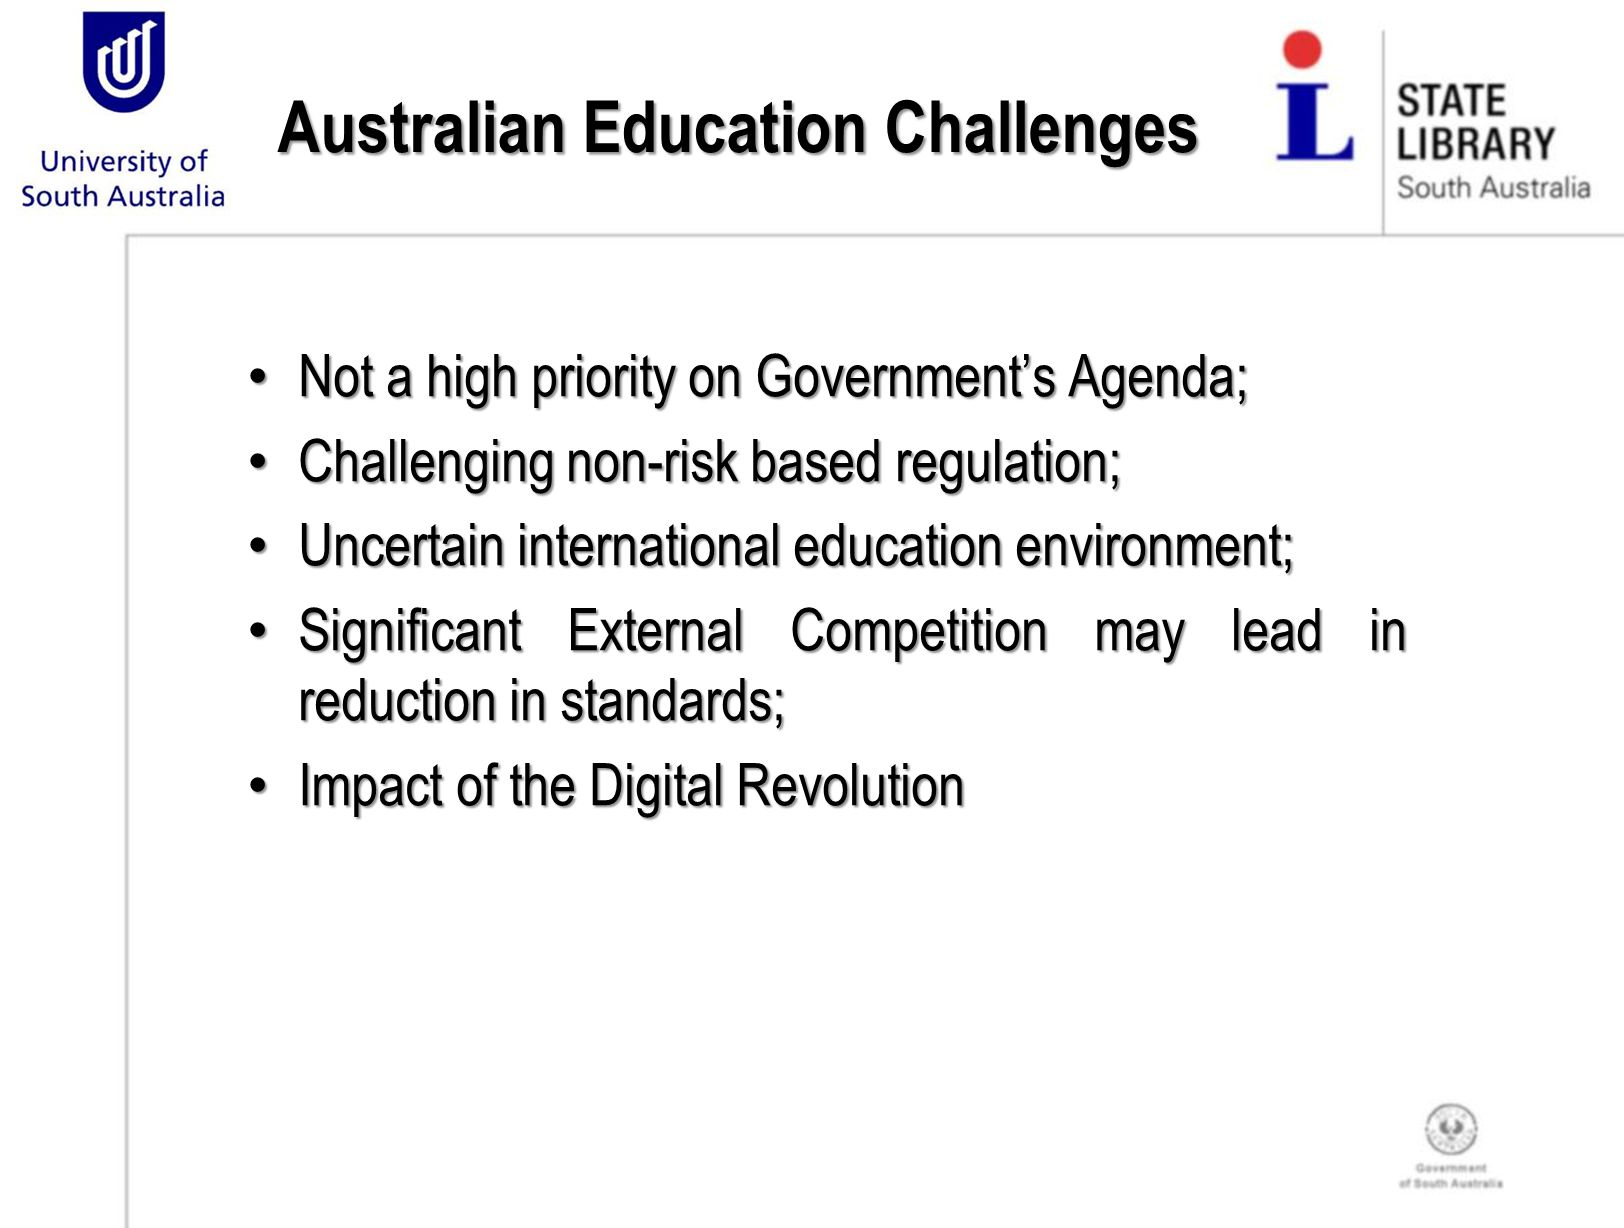 Australian Education Challenges Not a high priority on Government's Agenda; Not a high priority on Government's Agenda; Challenging non-risk based regulation; Challenging non-risk based regulation; Uncertain international education environment; Uncertain international education environment; Significant External Competition may lead in reduction in standards; Significant External Competition may lead in reduction in standards; Impact of the Digital Revolution Impact of the Digital Revolution